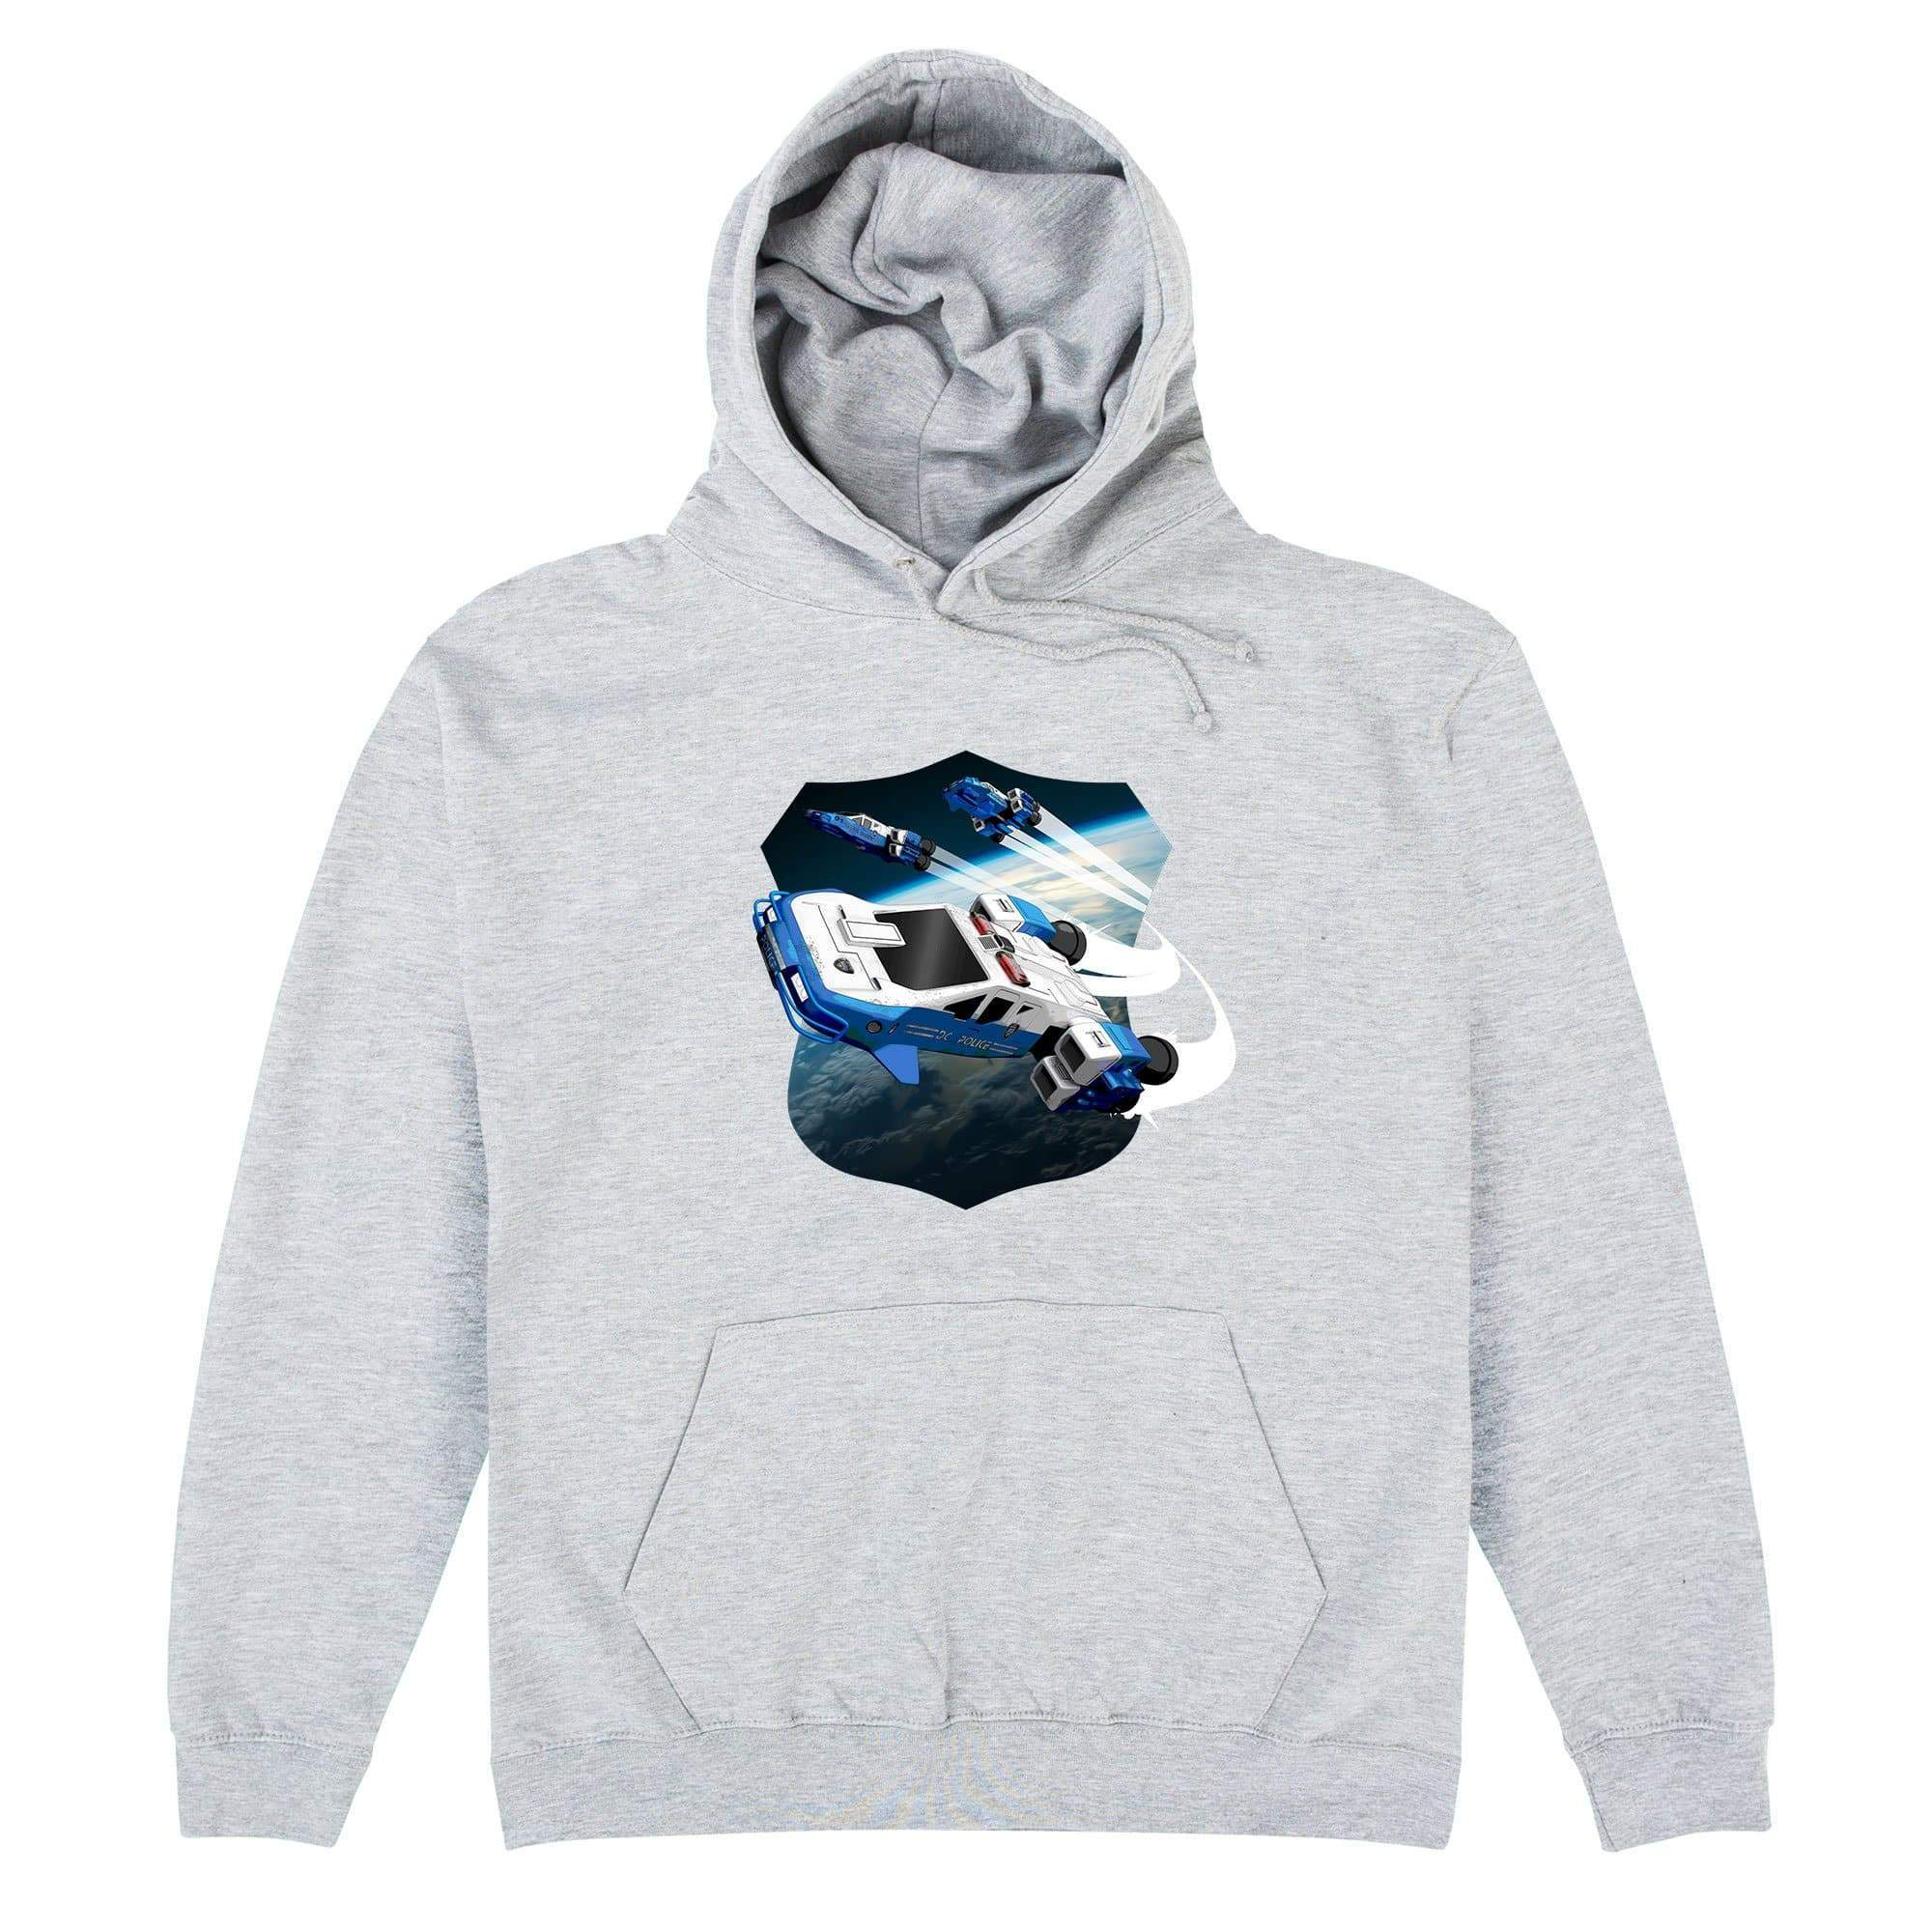 Space Precinct Cruiser Hoodie [Official & Exclusive] - The Gerry Anderson Store